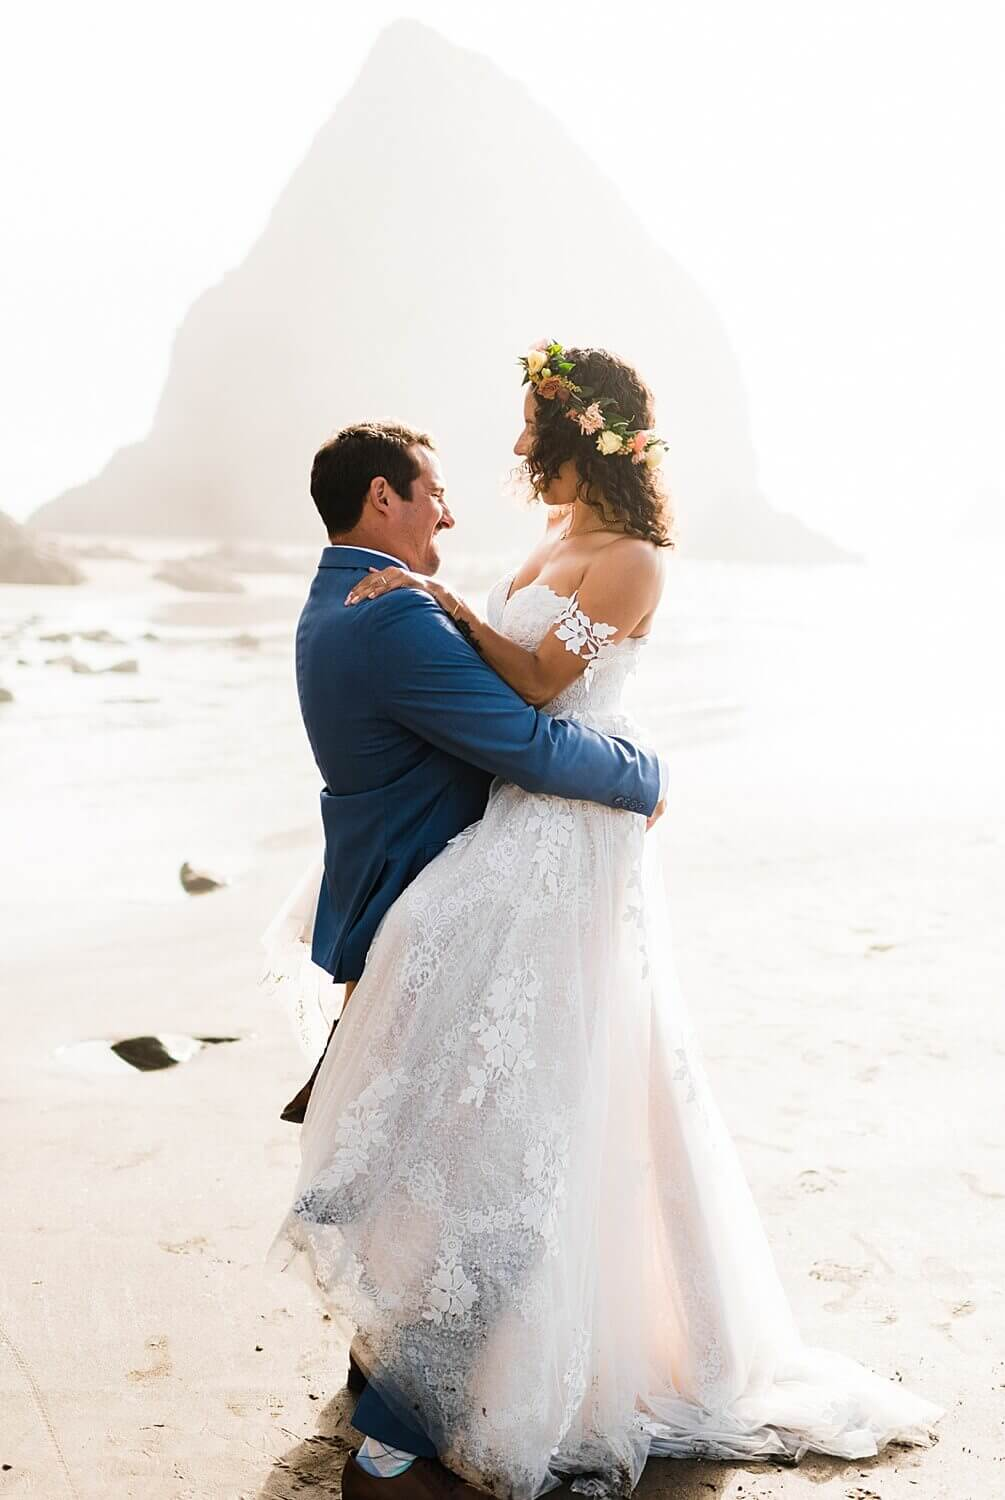 Arch Cape,MH Events,Oregon,Oregon Coast,Oregon Coast adventure elopement,adventure elopement photographer,elope your life,intimate wedding,pacific coast floral design,sam starns,